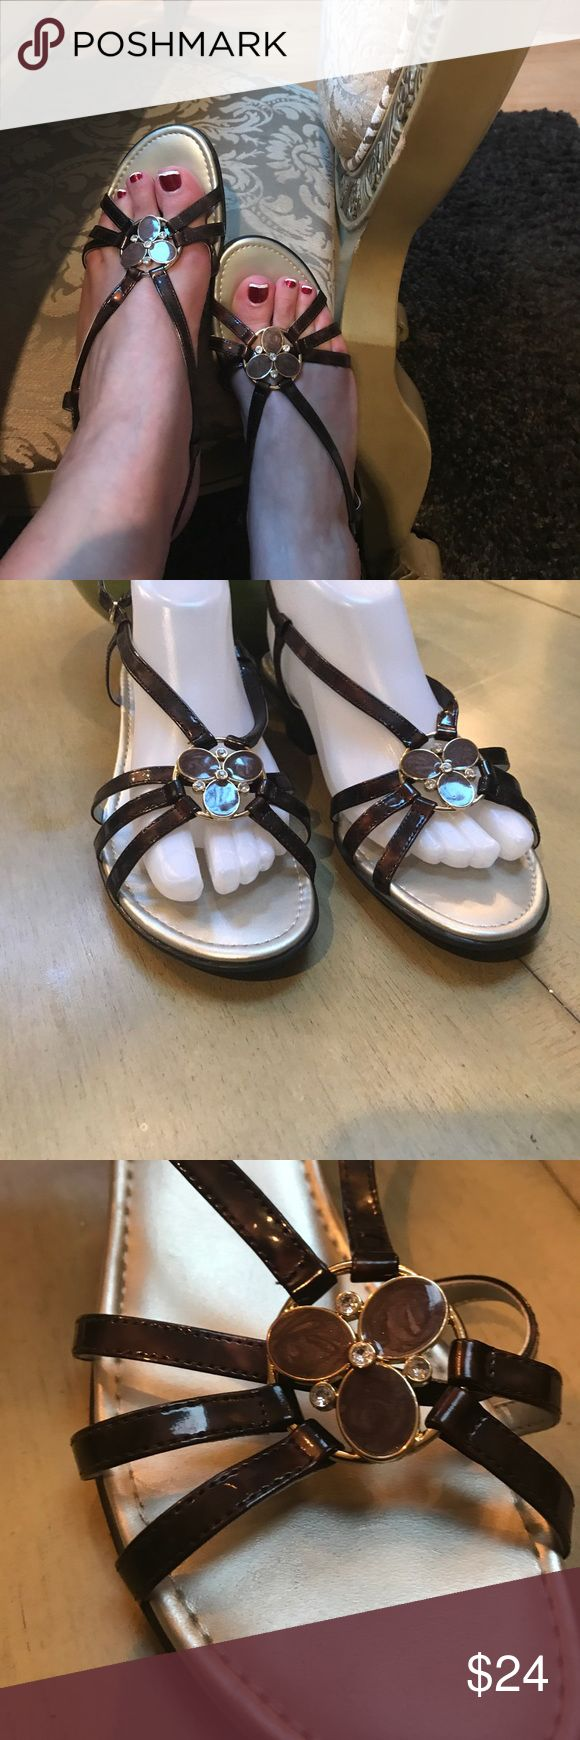 Easy spirit sandals 8.5 These are very cute sandals 8.5 brown and gold design with stones worn a few times in great condition. Heel height 1.5 inches Easy Spirit Shoes Sandals